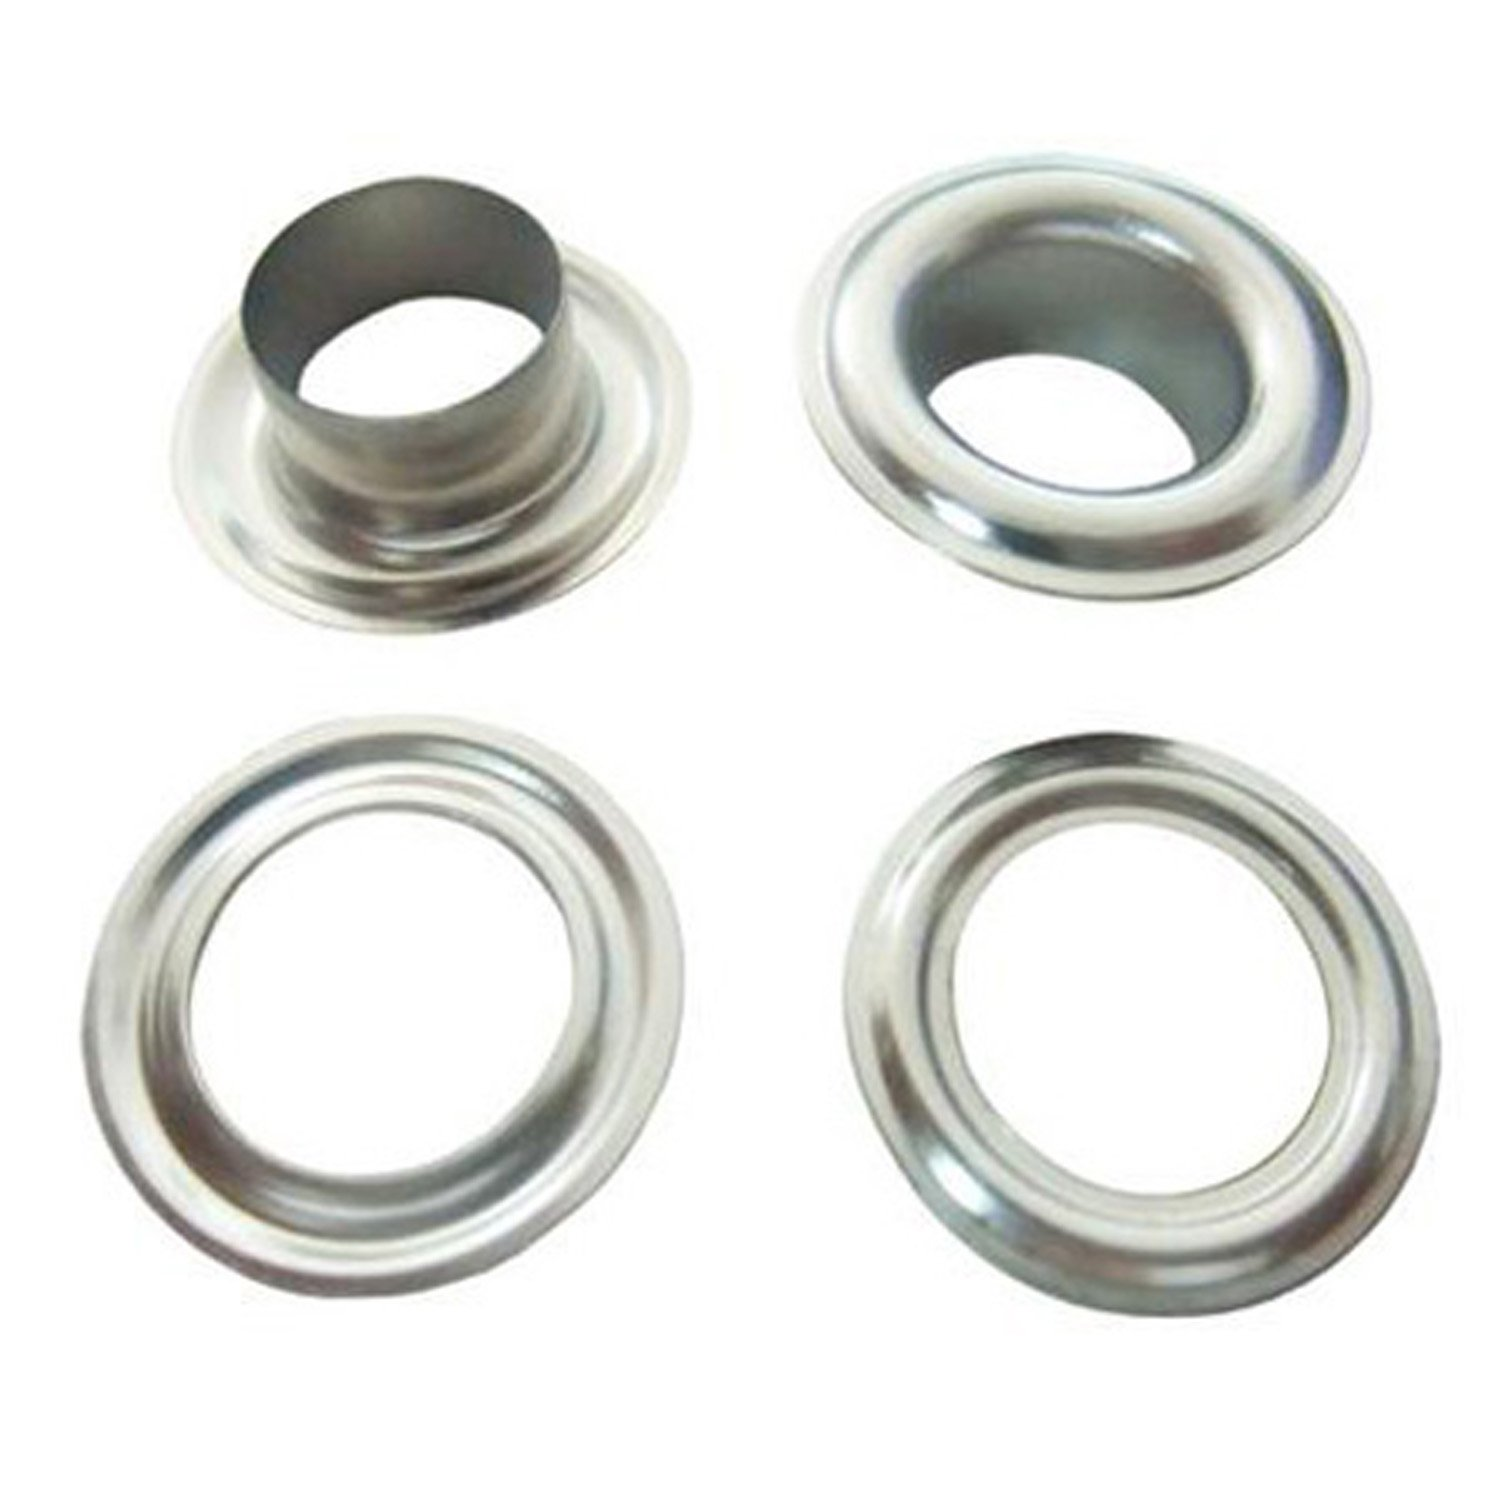 Trimming Shop Gold Eyelets Grommet with Three Set Hand Tool for Tarpaulins Fabric Tent Vinyl Banner 50 x 12.5mm